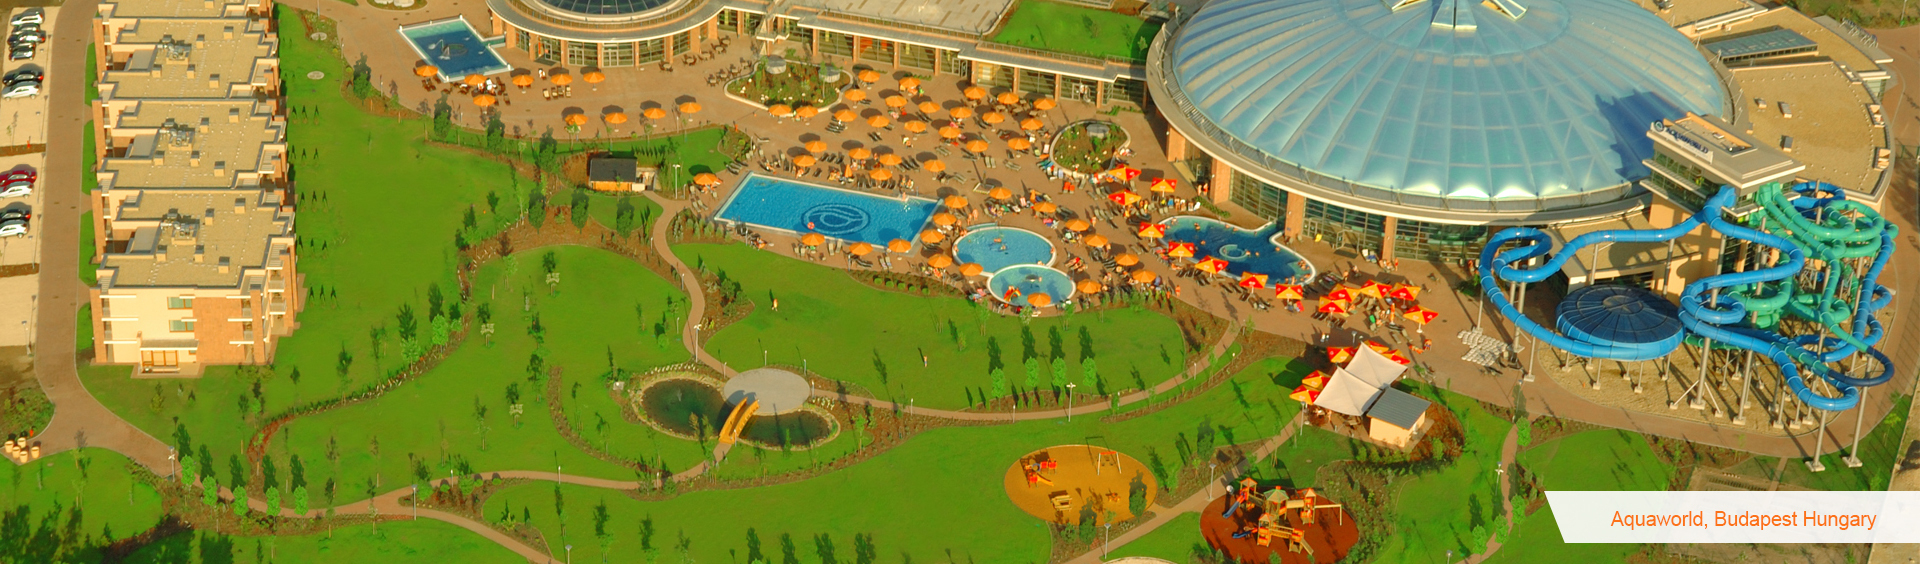 Polin Waterparks: Water Park Supplier & Water Slide Manufacturer dedans Piscine Atlantides